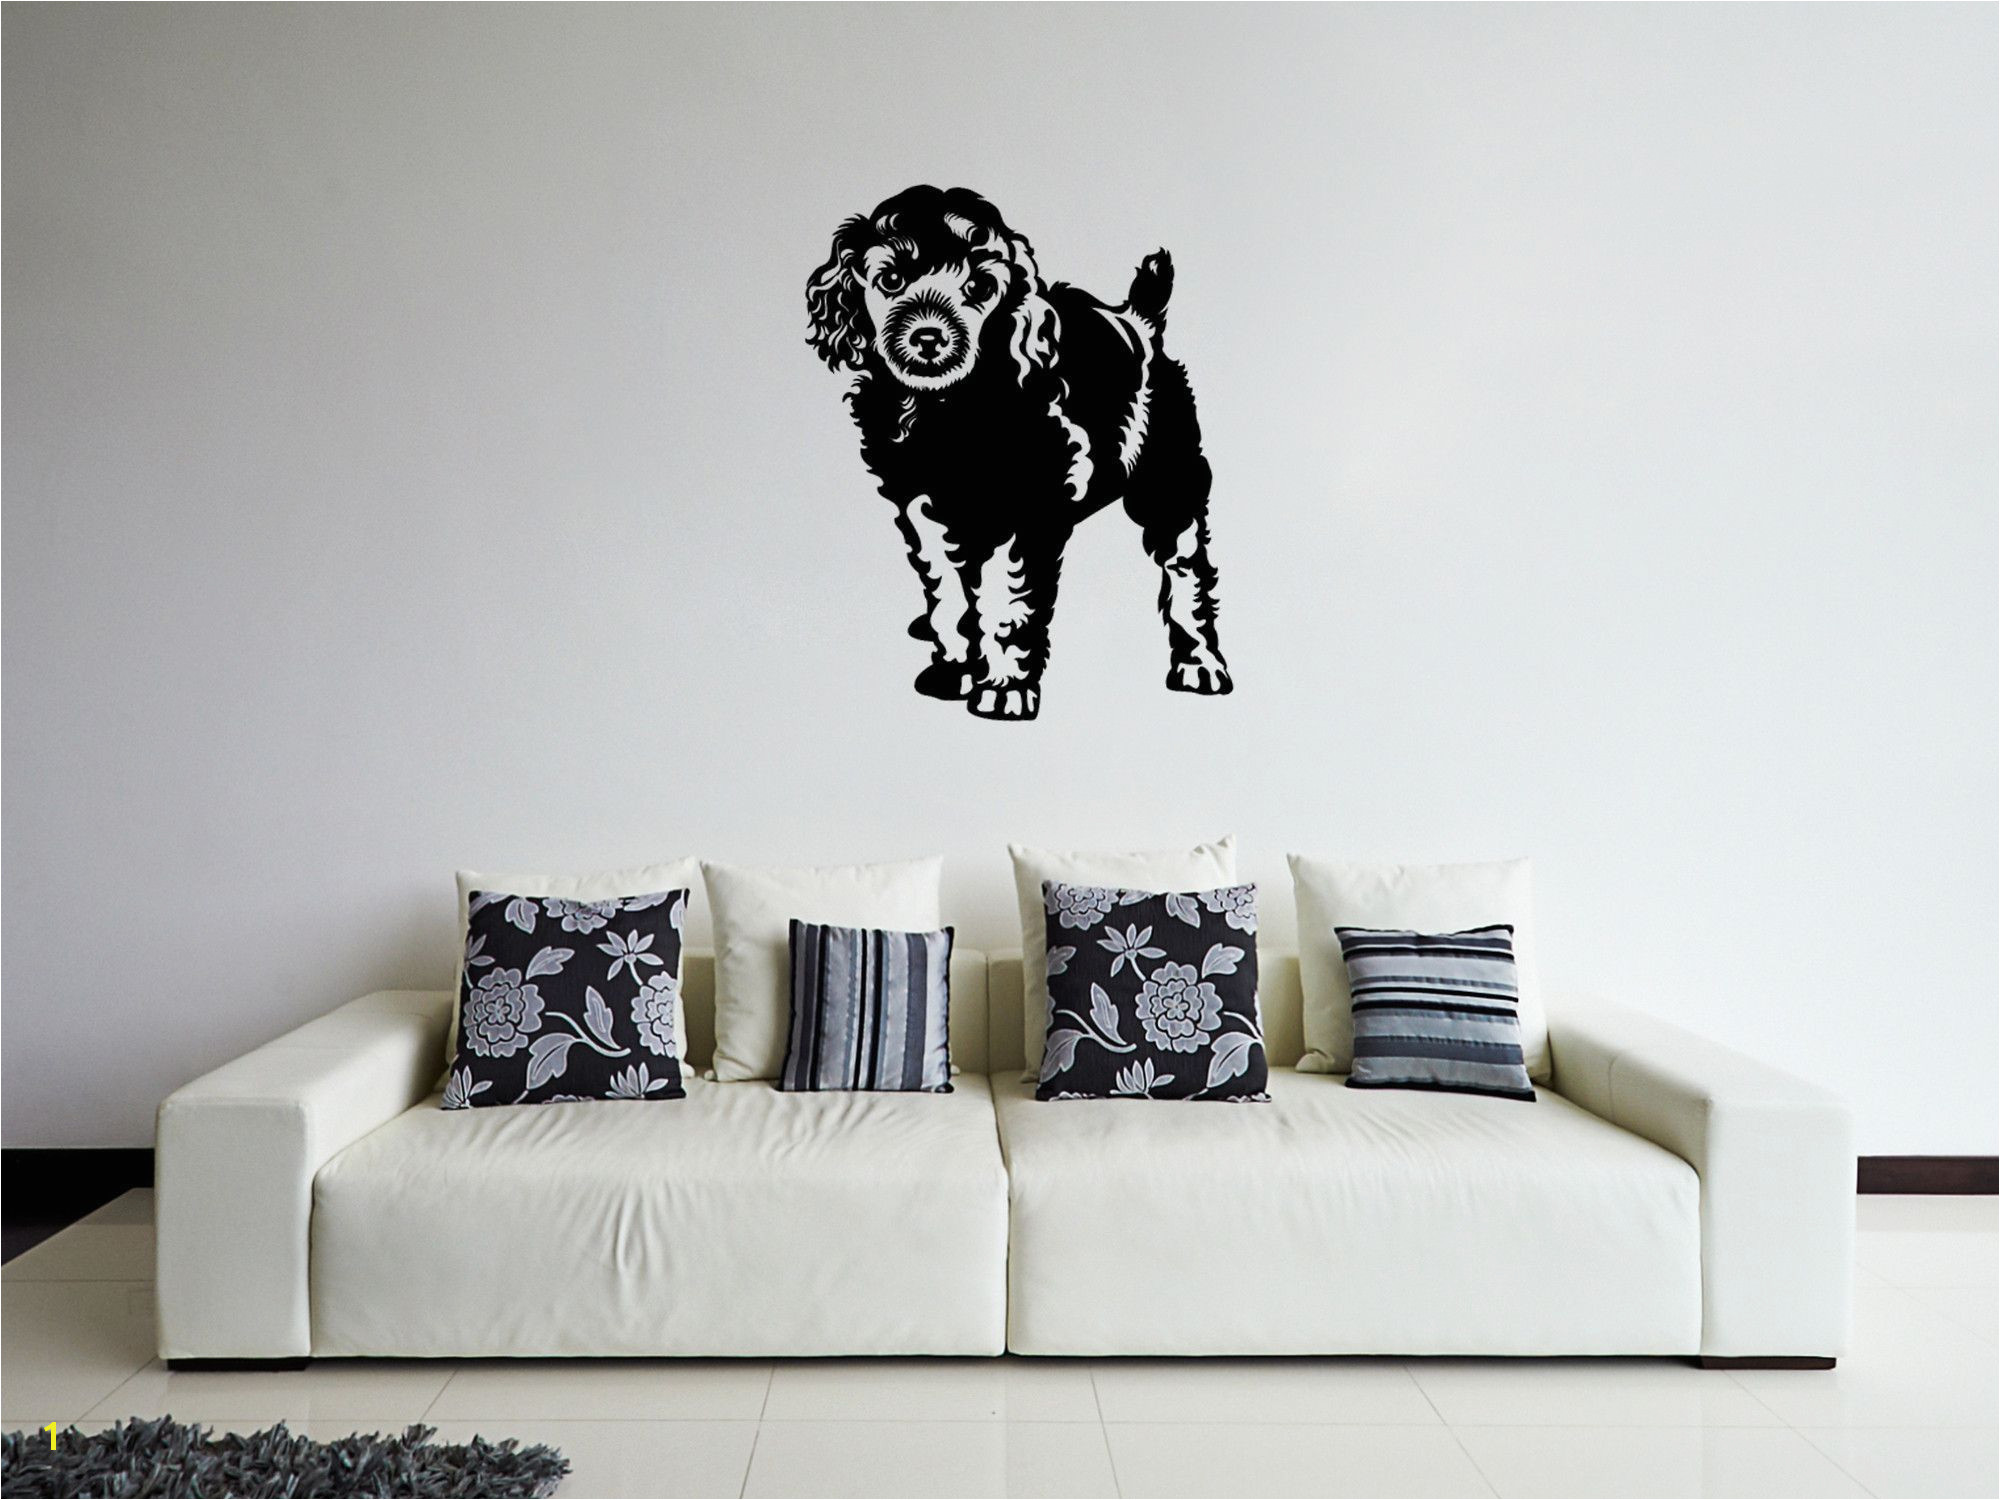 Dog Murals for Wall Ik295 Wall Decal Sticker Decor Cute Dog Animal Interior Bed Kids